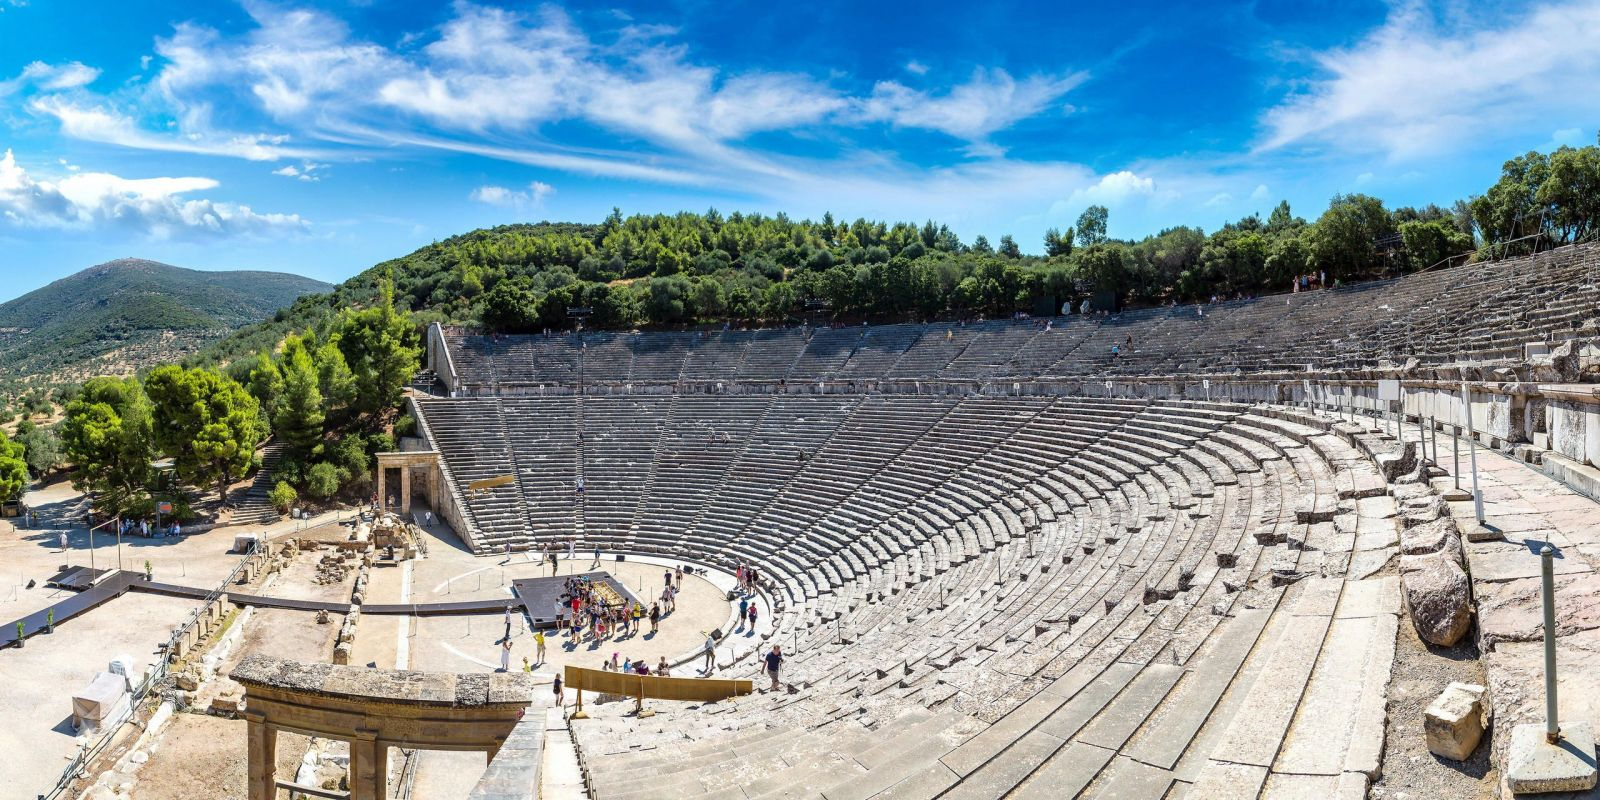 Epidaurus, Greece - Monterrasol private tours to Epidaurus, Greece. Travel agency offers custom private car tours to see Epidaurus in Greece. Order custom private tour to Epidaurus with departure date on request.